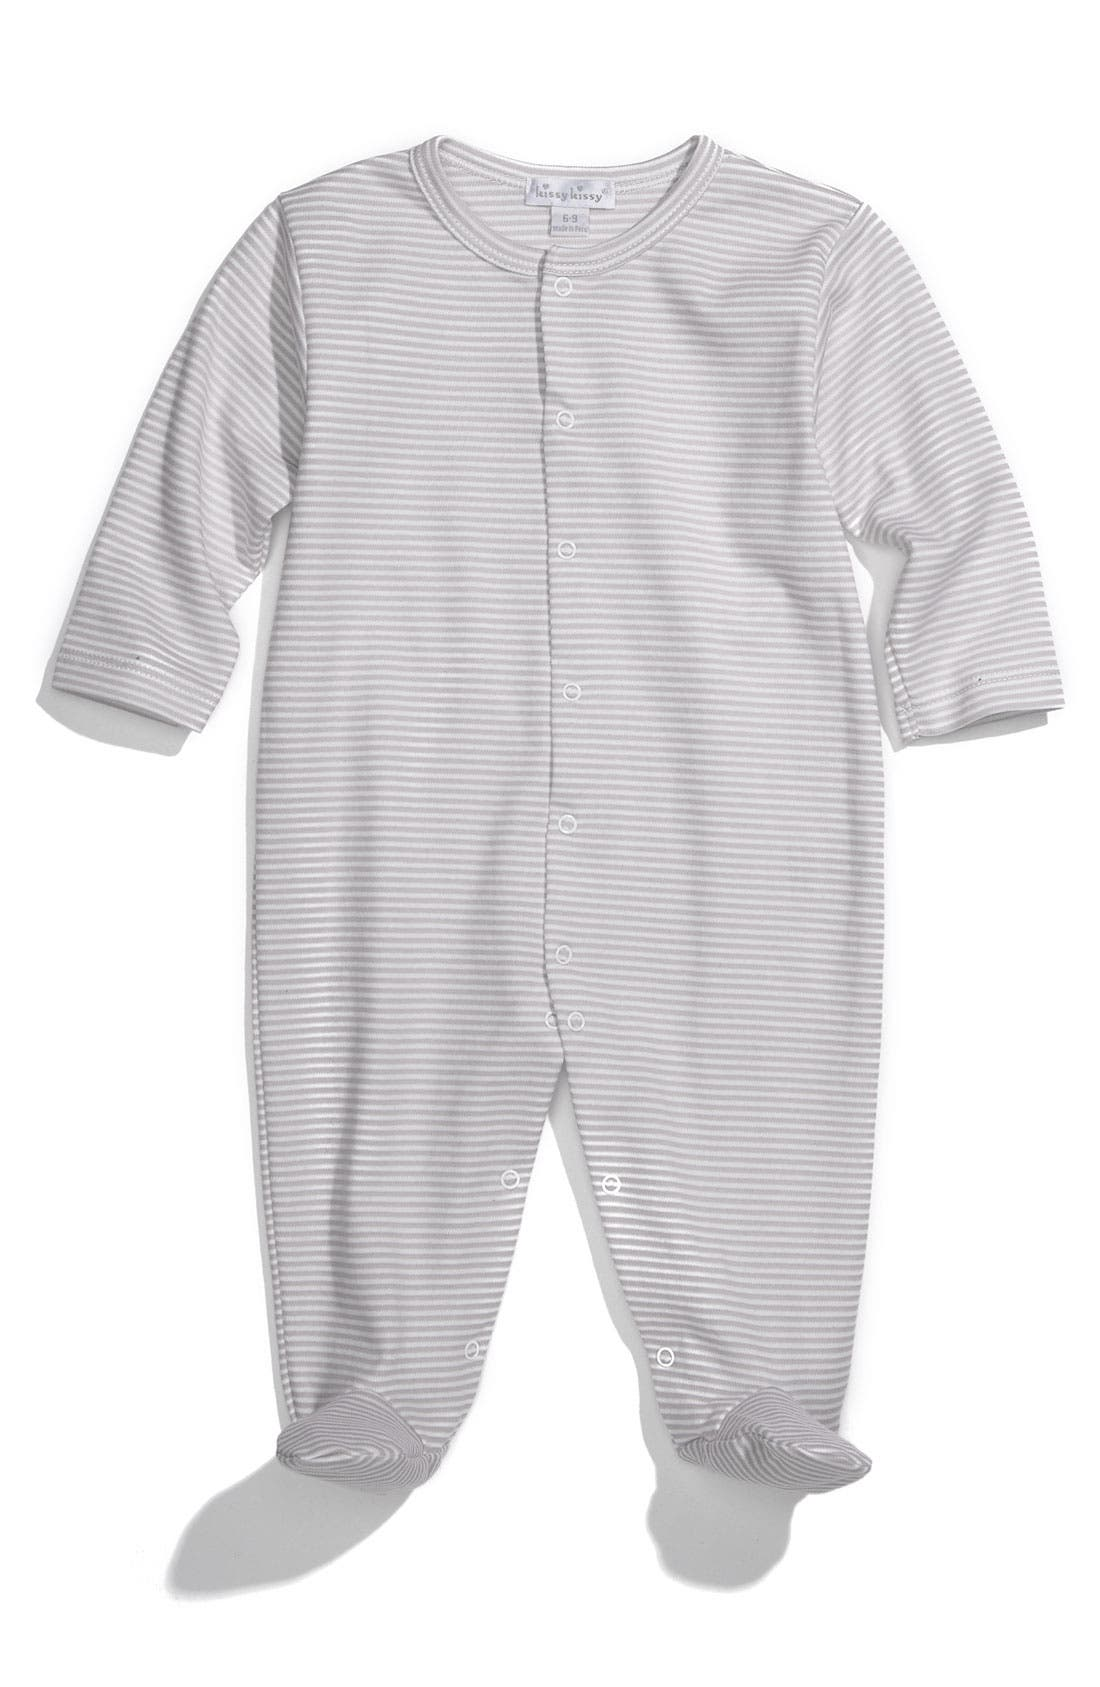 Alternate Image 1 Selected - Kissy Kissy Pima Cotton Footie (Infant)